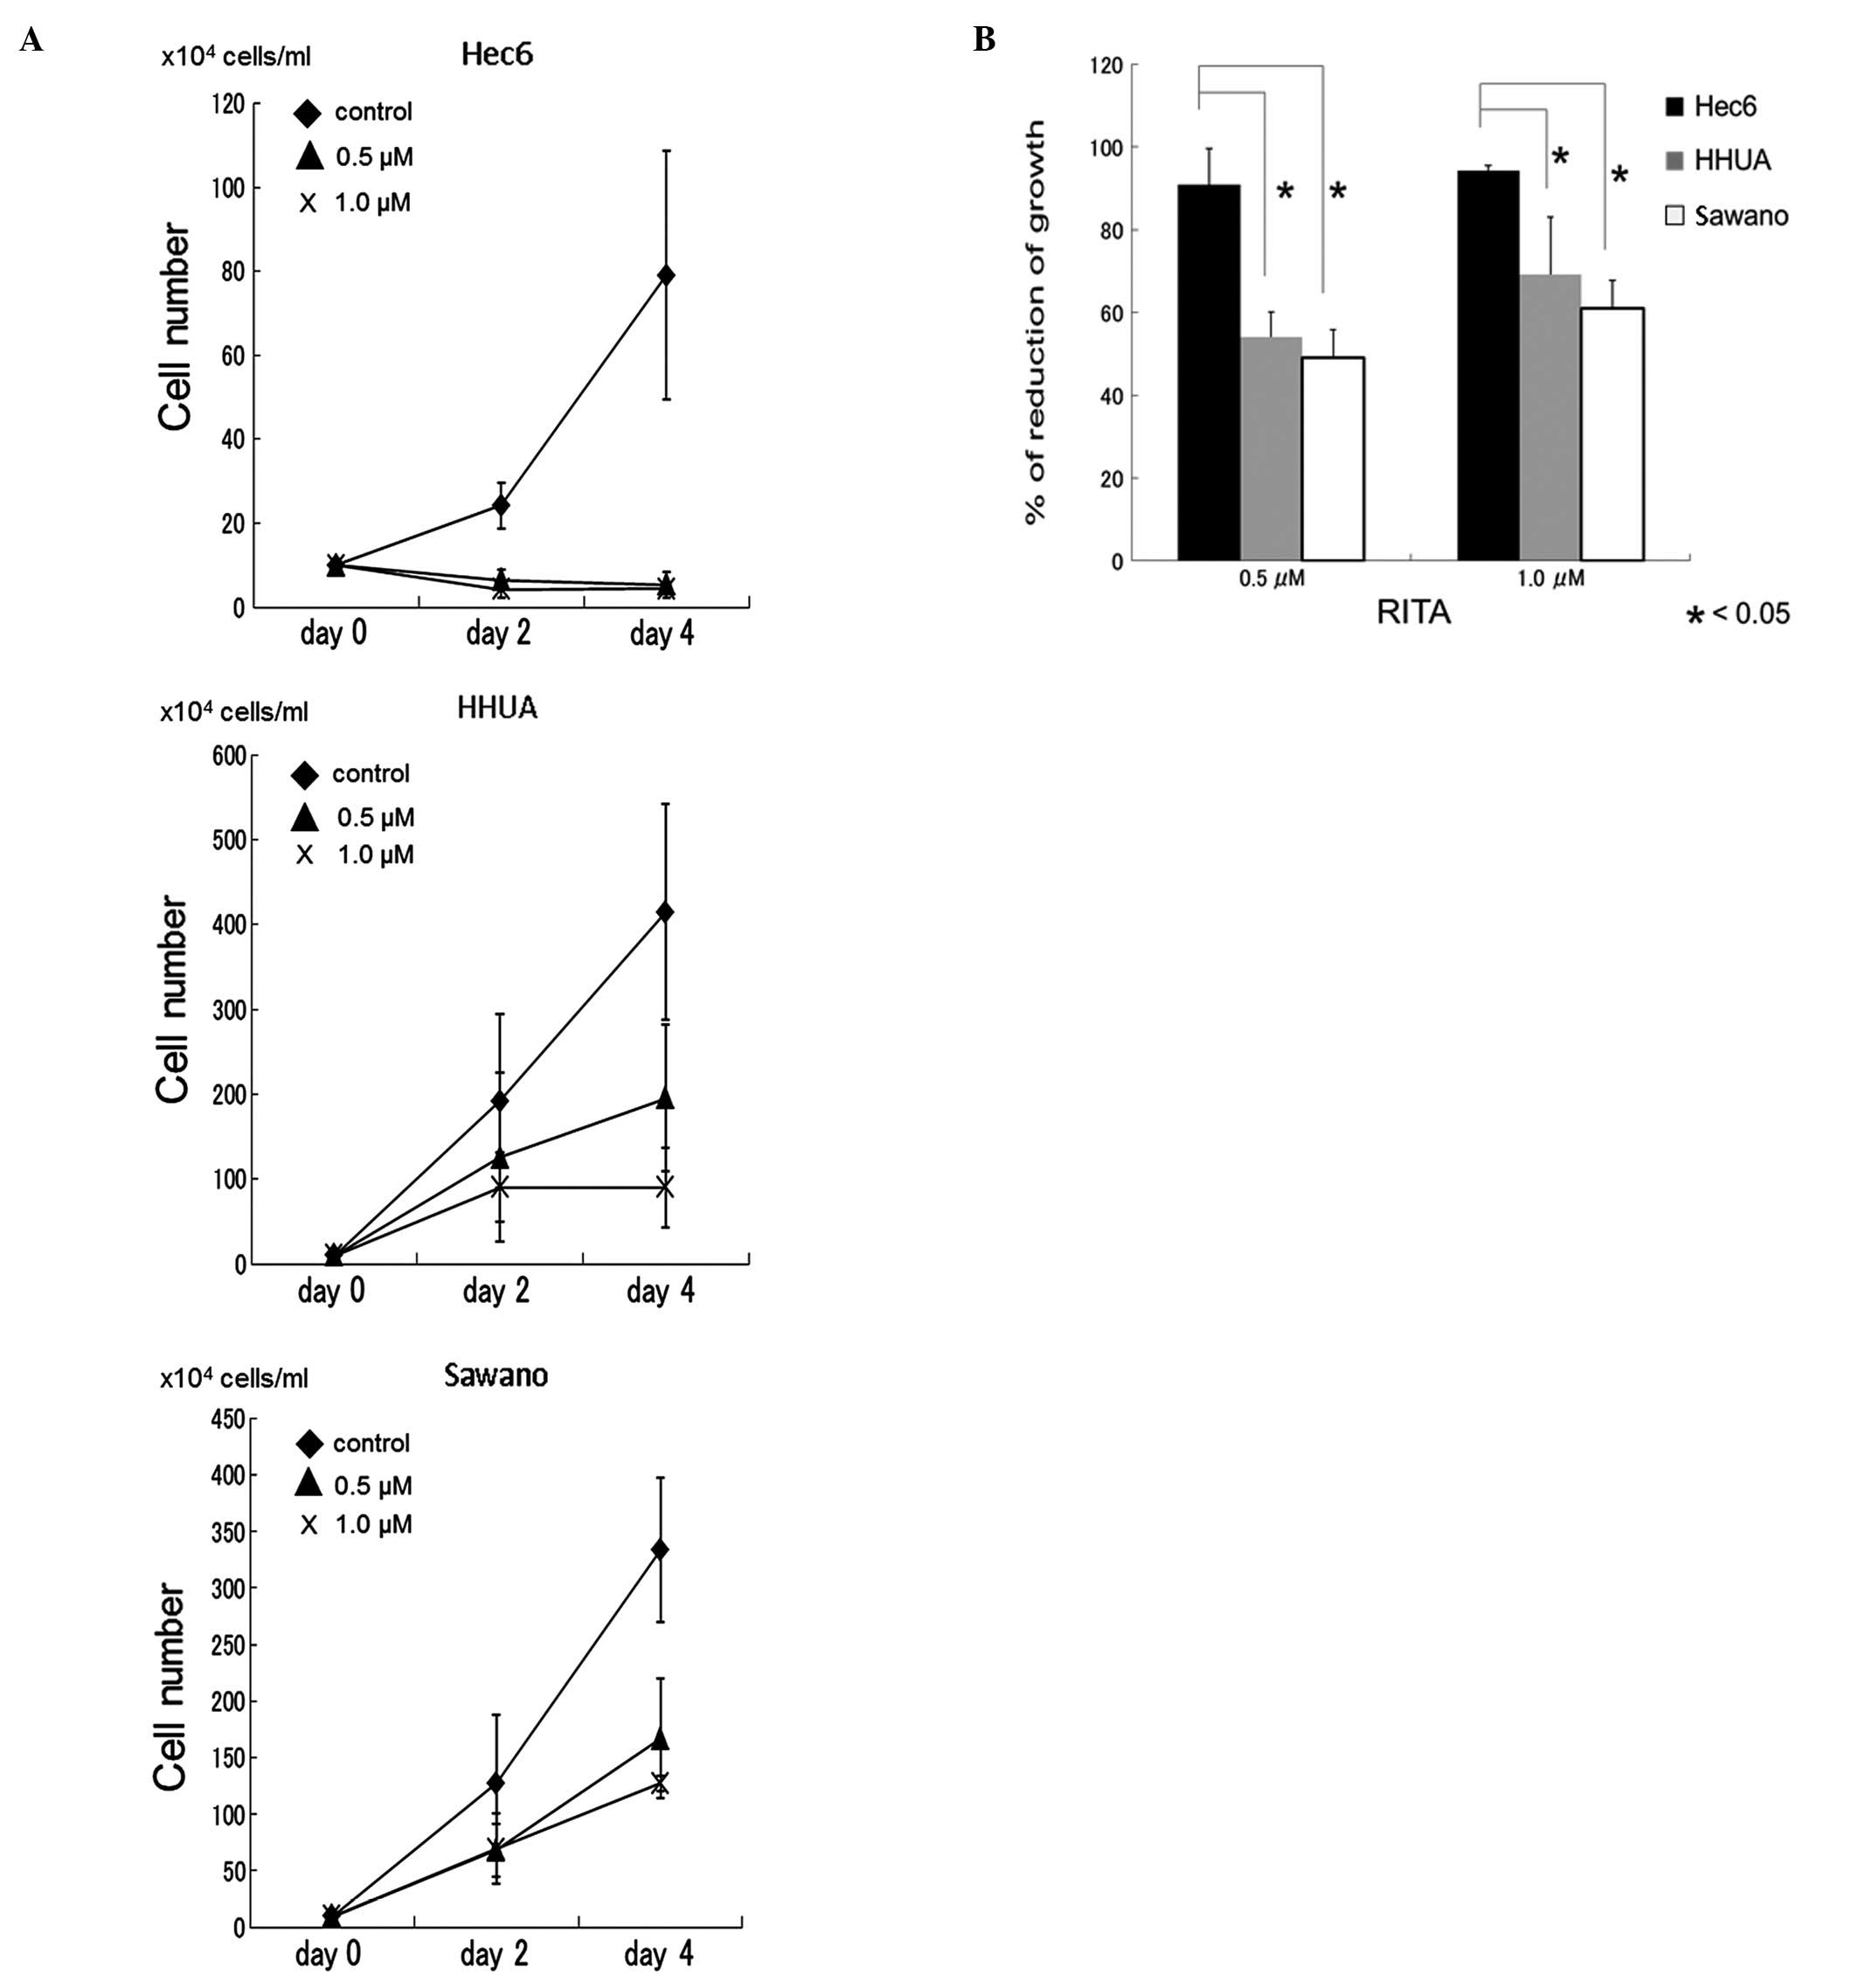 Association of mdm2 snp309 and tp53 arg72pro polymorphisms with growth inhibitory effects of rita on endometrial cancer cell lines a treatment with rita inhibited cell growth in endometrial cancer cell lines buycottarizona